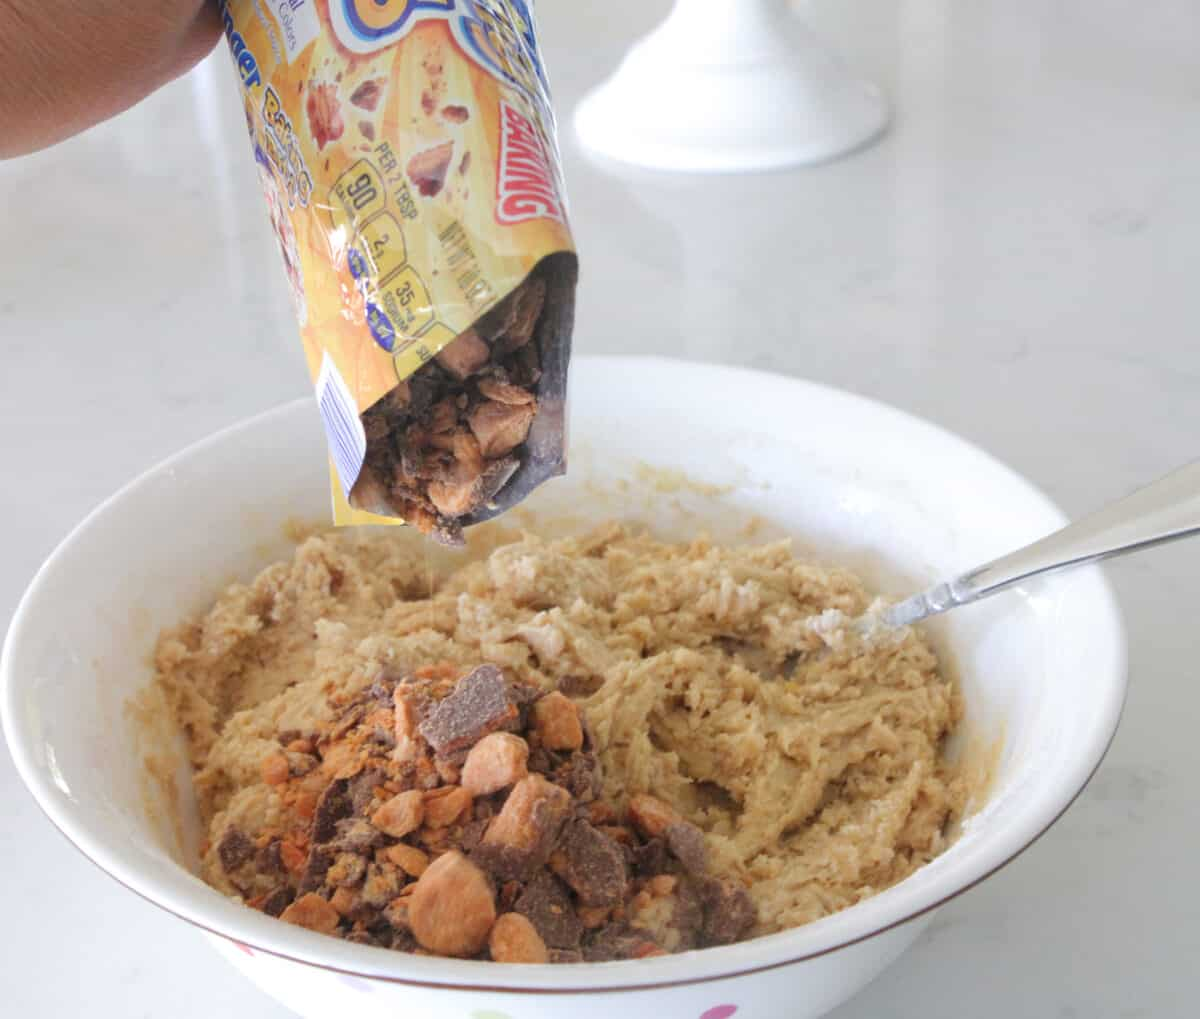 pouring butterfinger pieces into cookie dough bowl